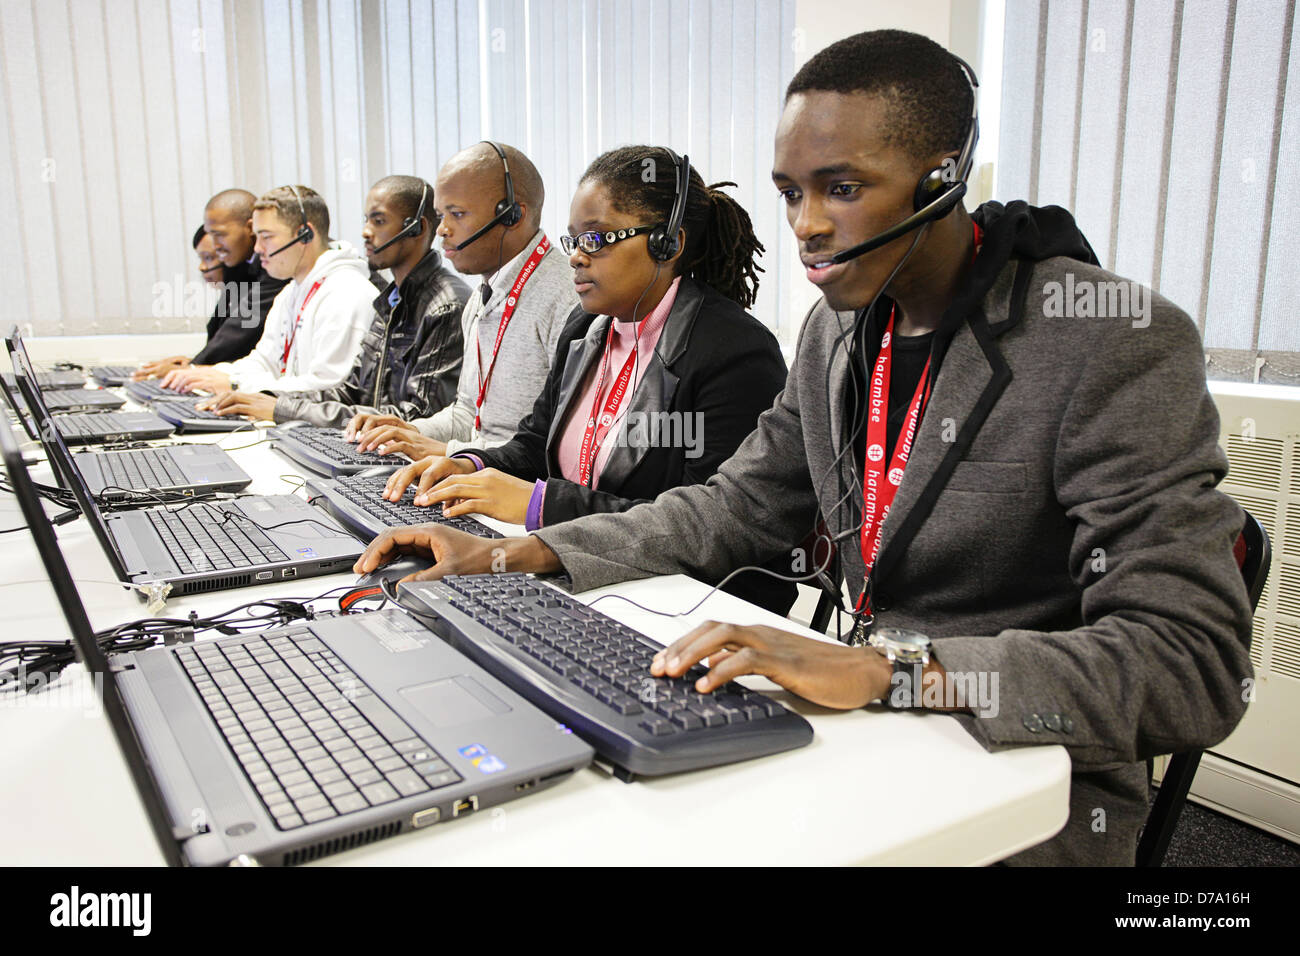 Cape Town based students training to be entry-level workers typing on laptops. - Stock Image